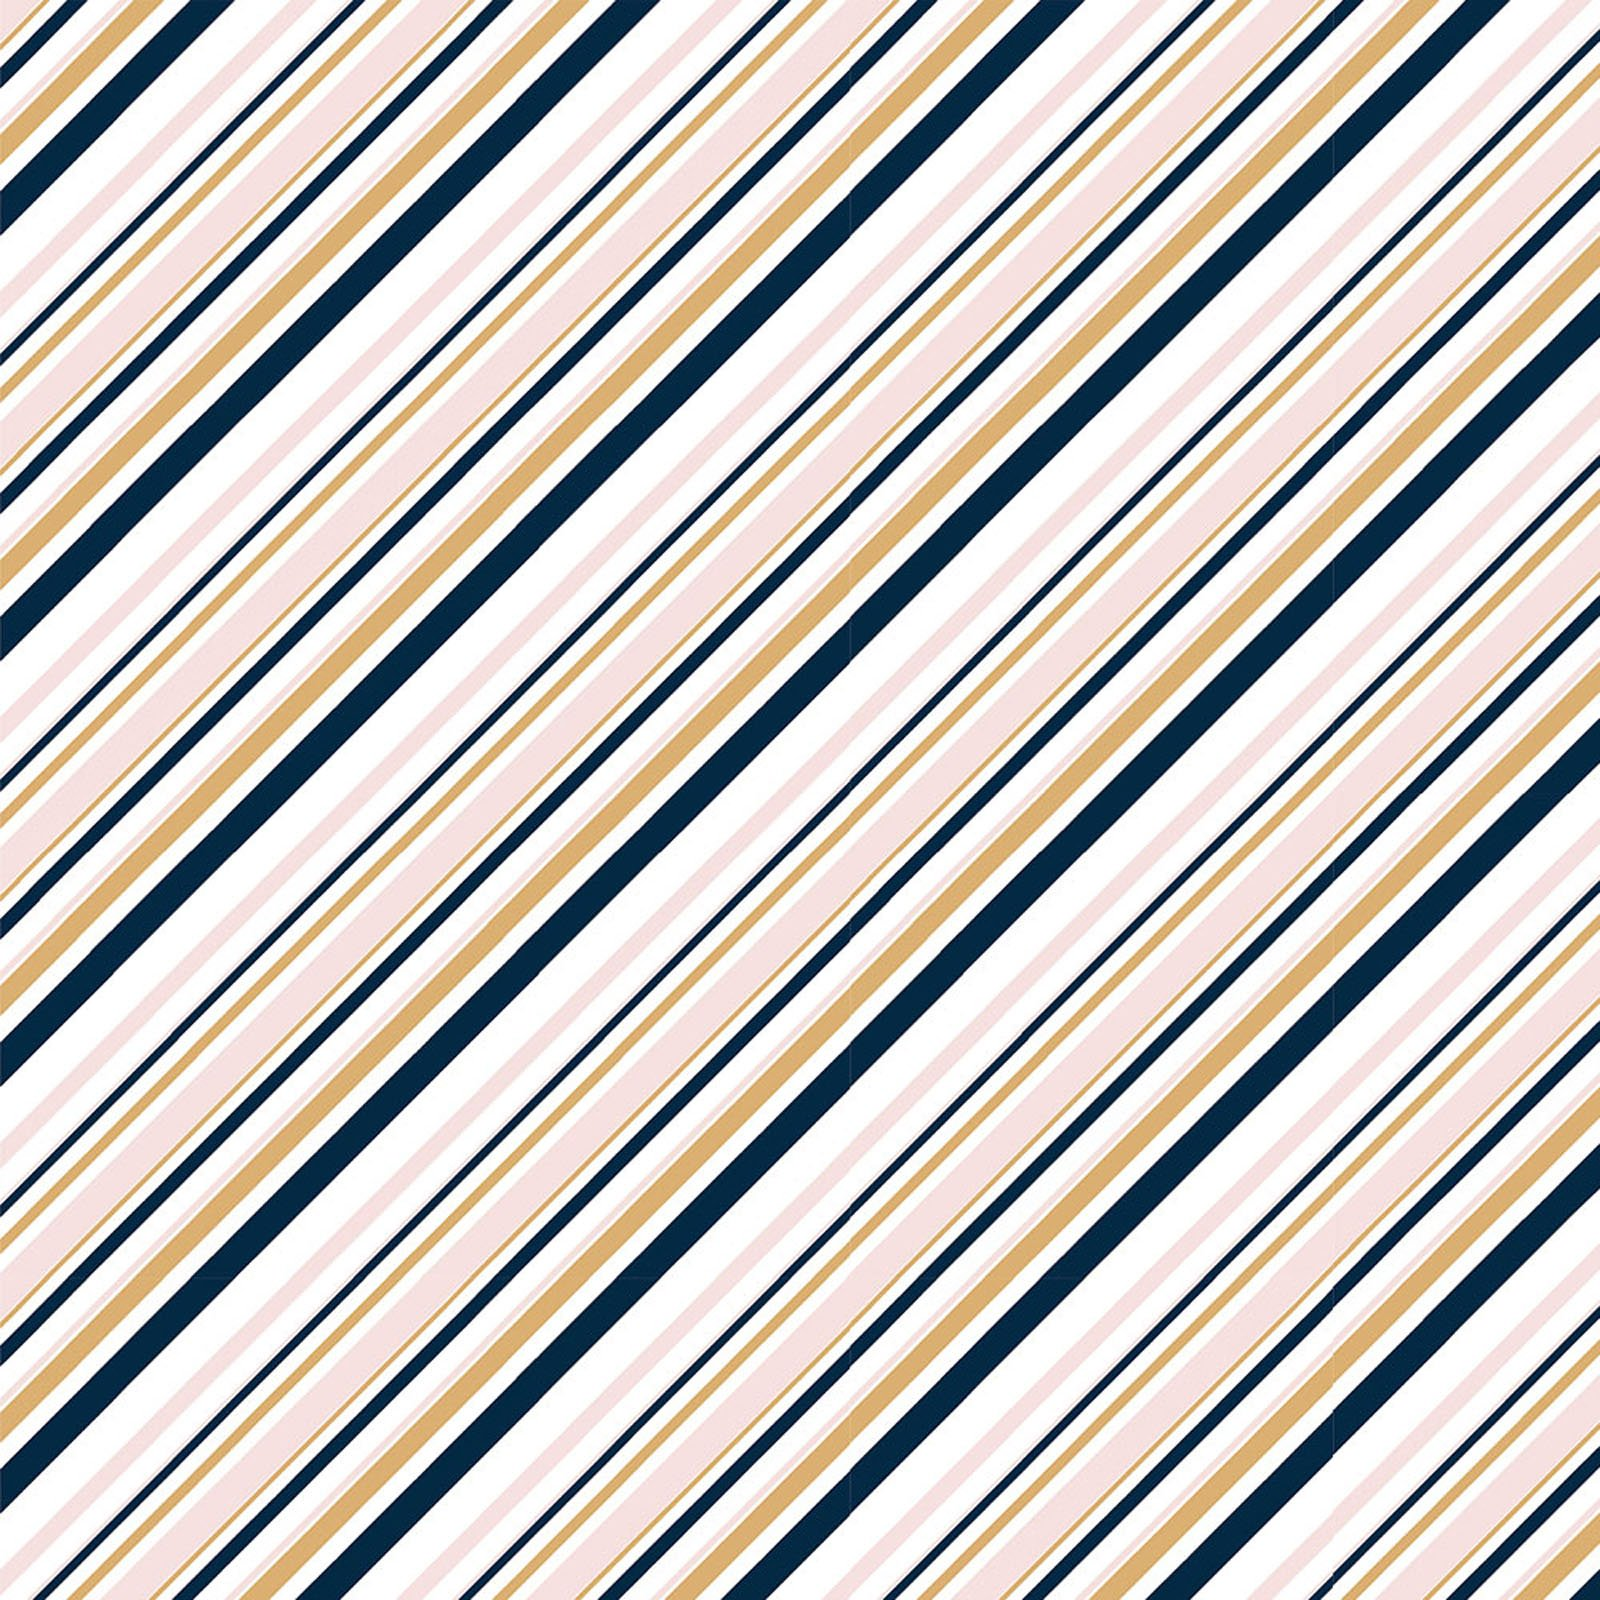 Mod Nouveau- Stripe- Blush- Jay-Cyn- Birch Fabrics- Organic Cotton